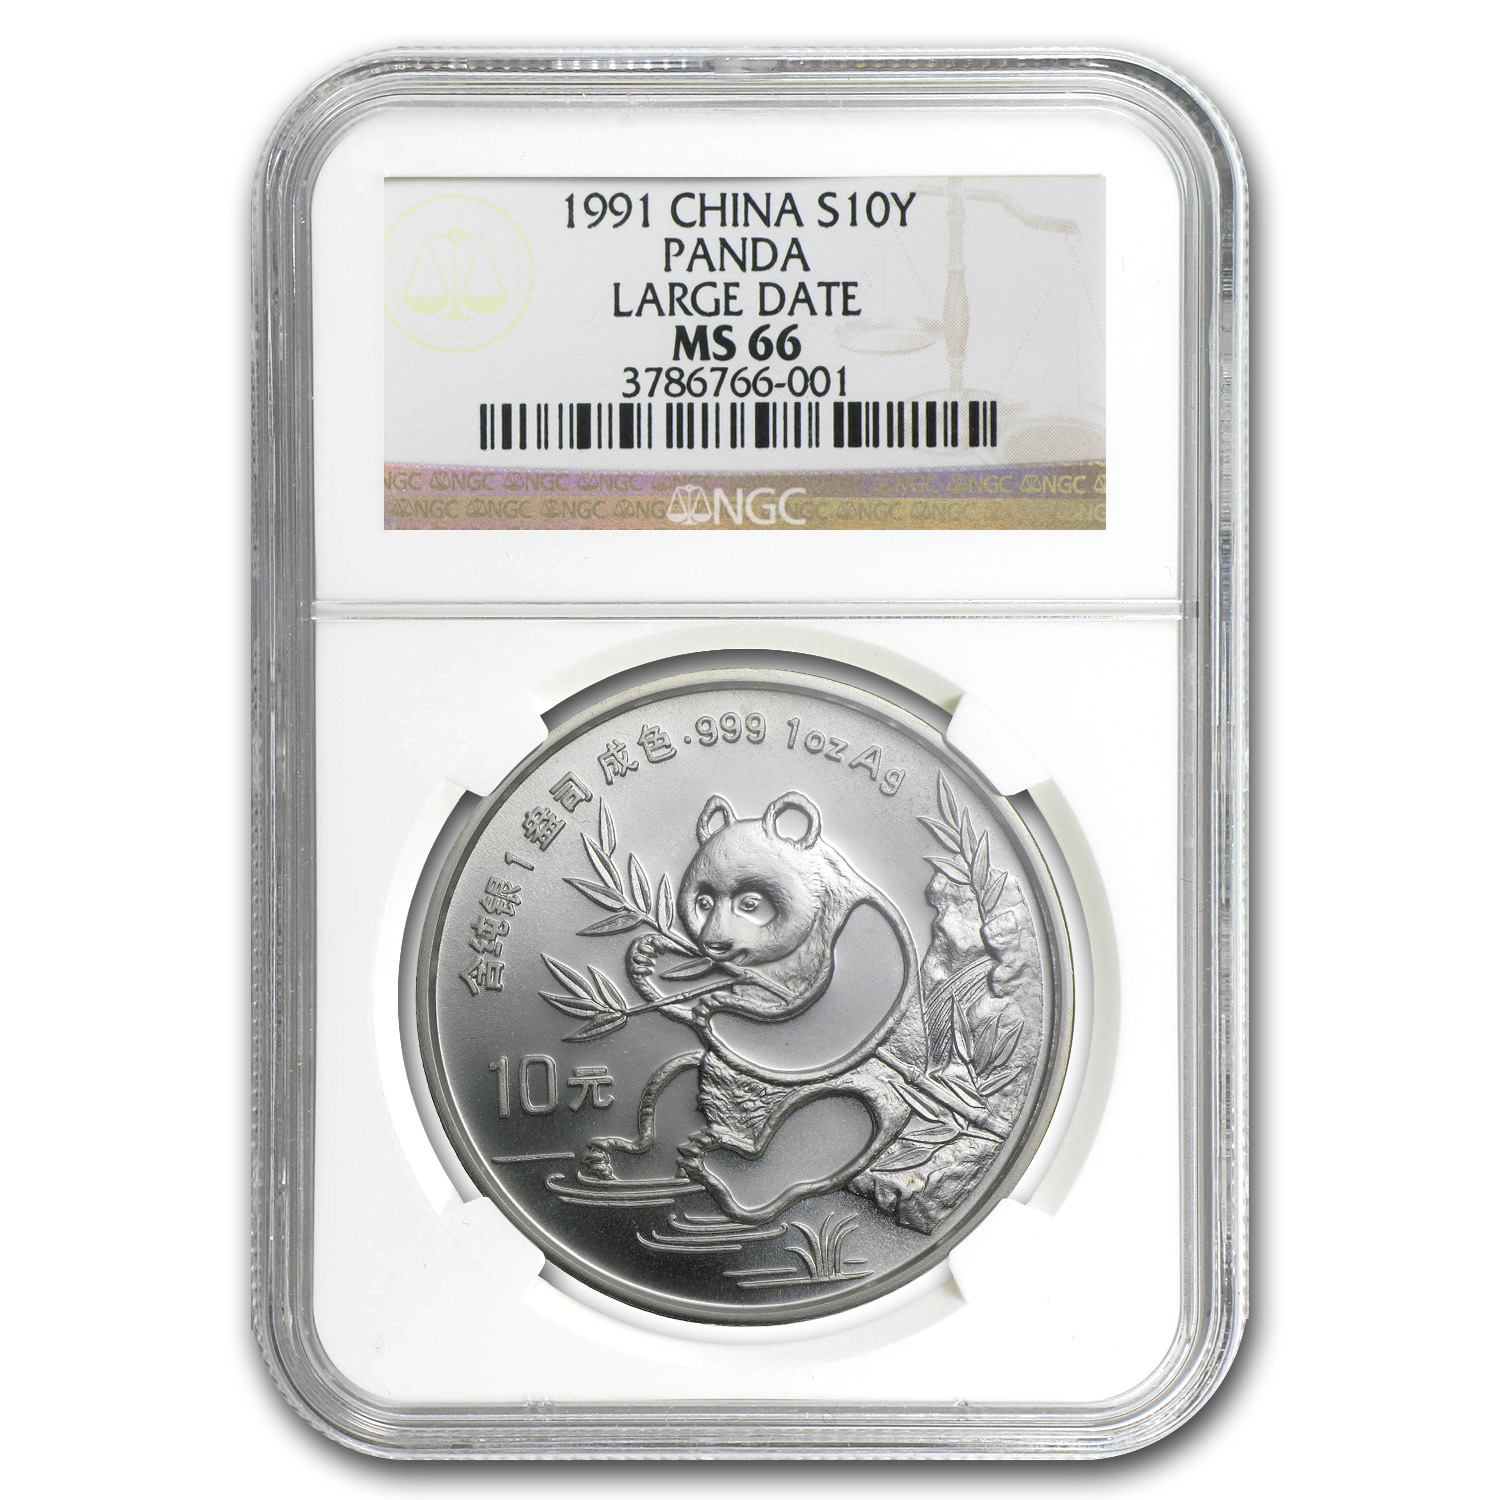 1991 China 1 oz Silver Panda MS-66 NGC (Large Date)